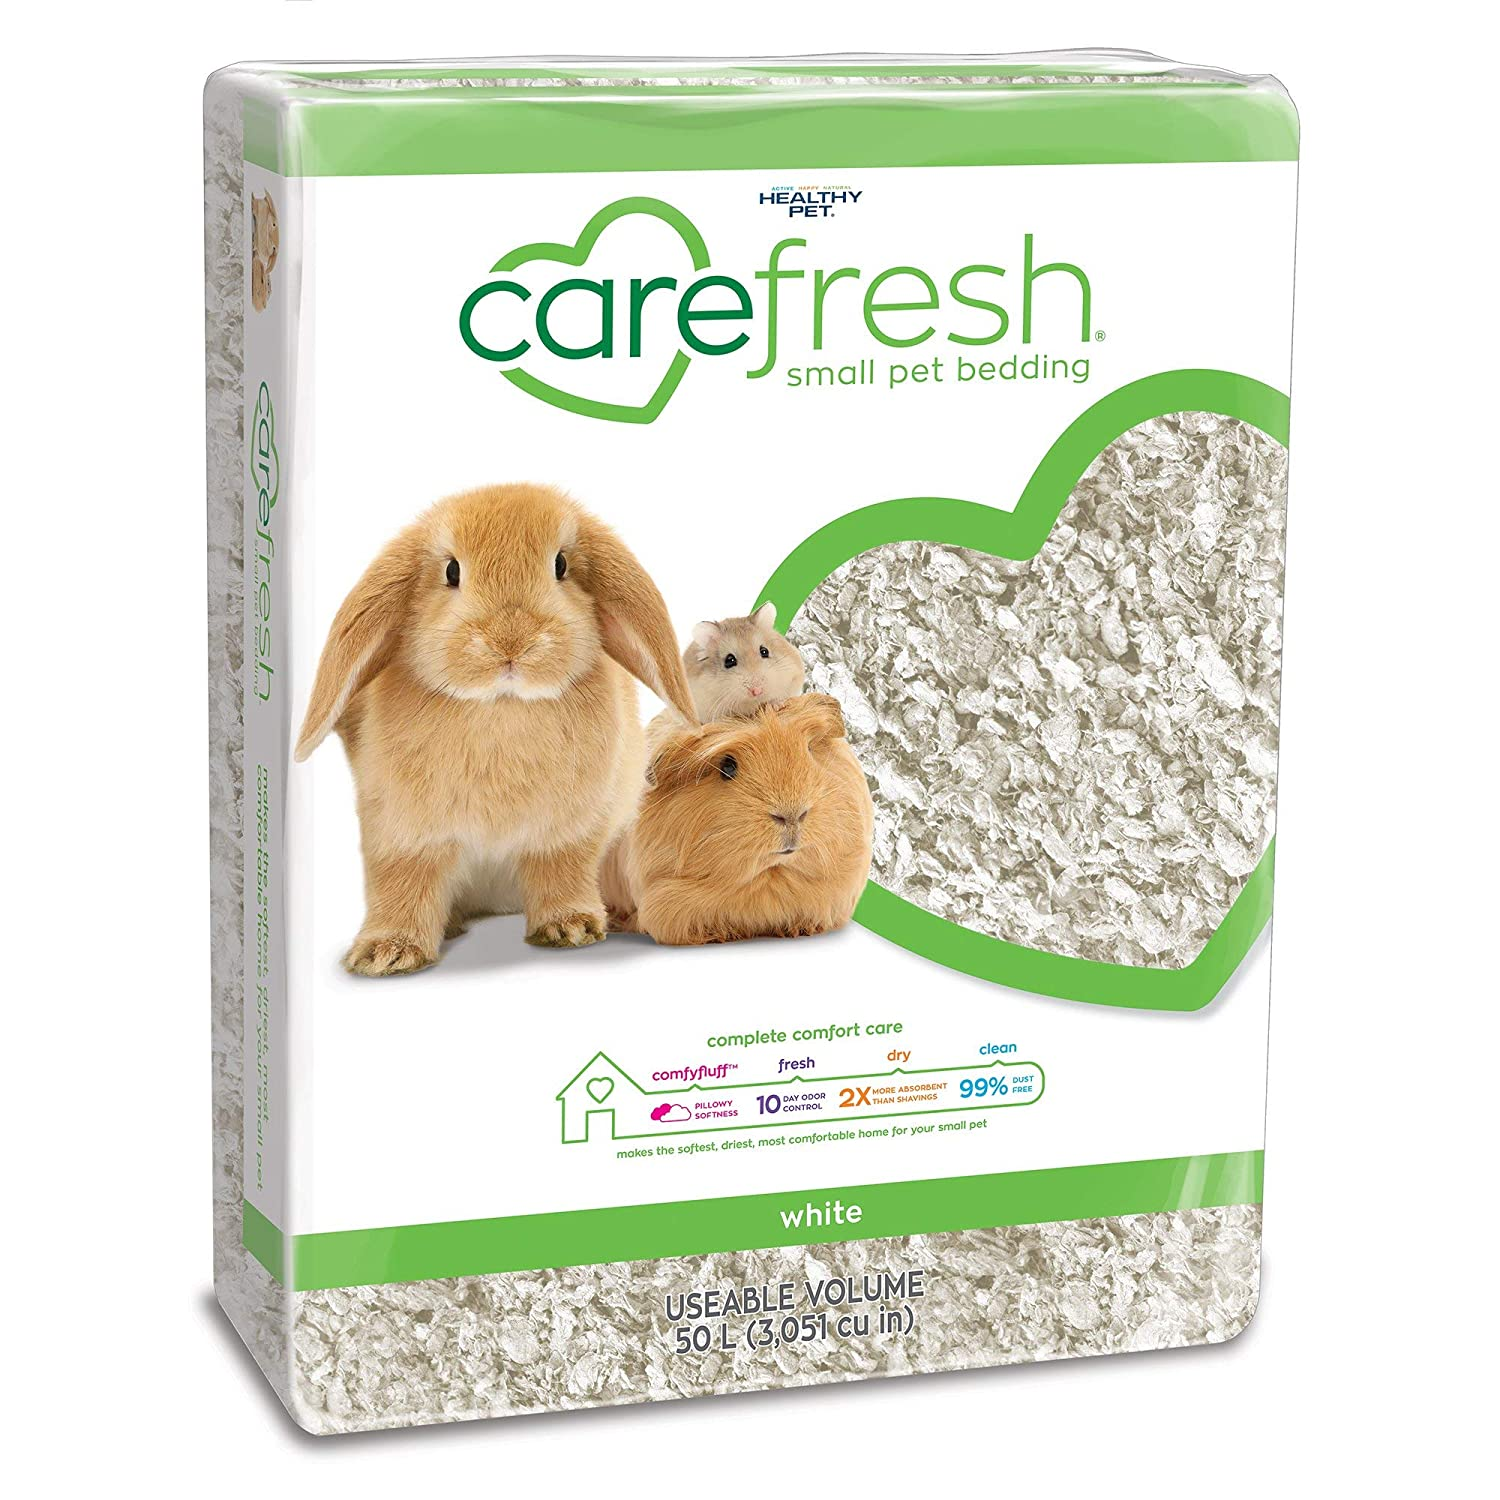 Carefresh Guinea pig bedding Review 2